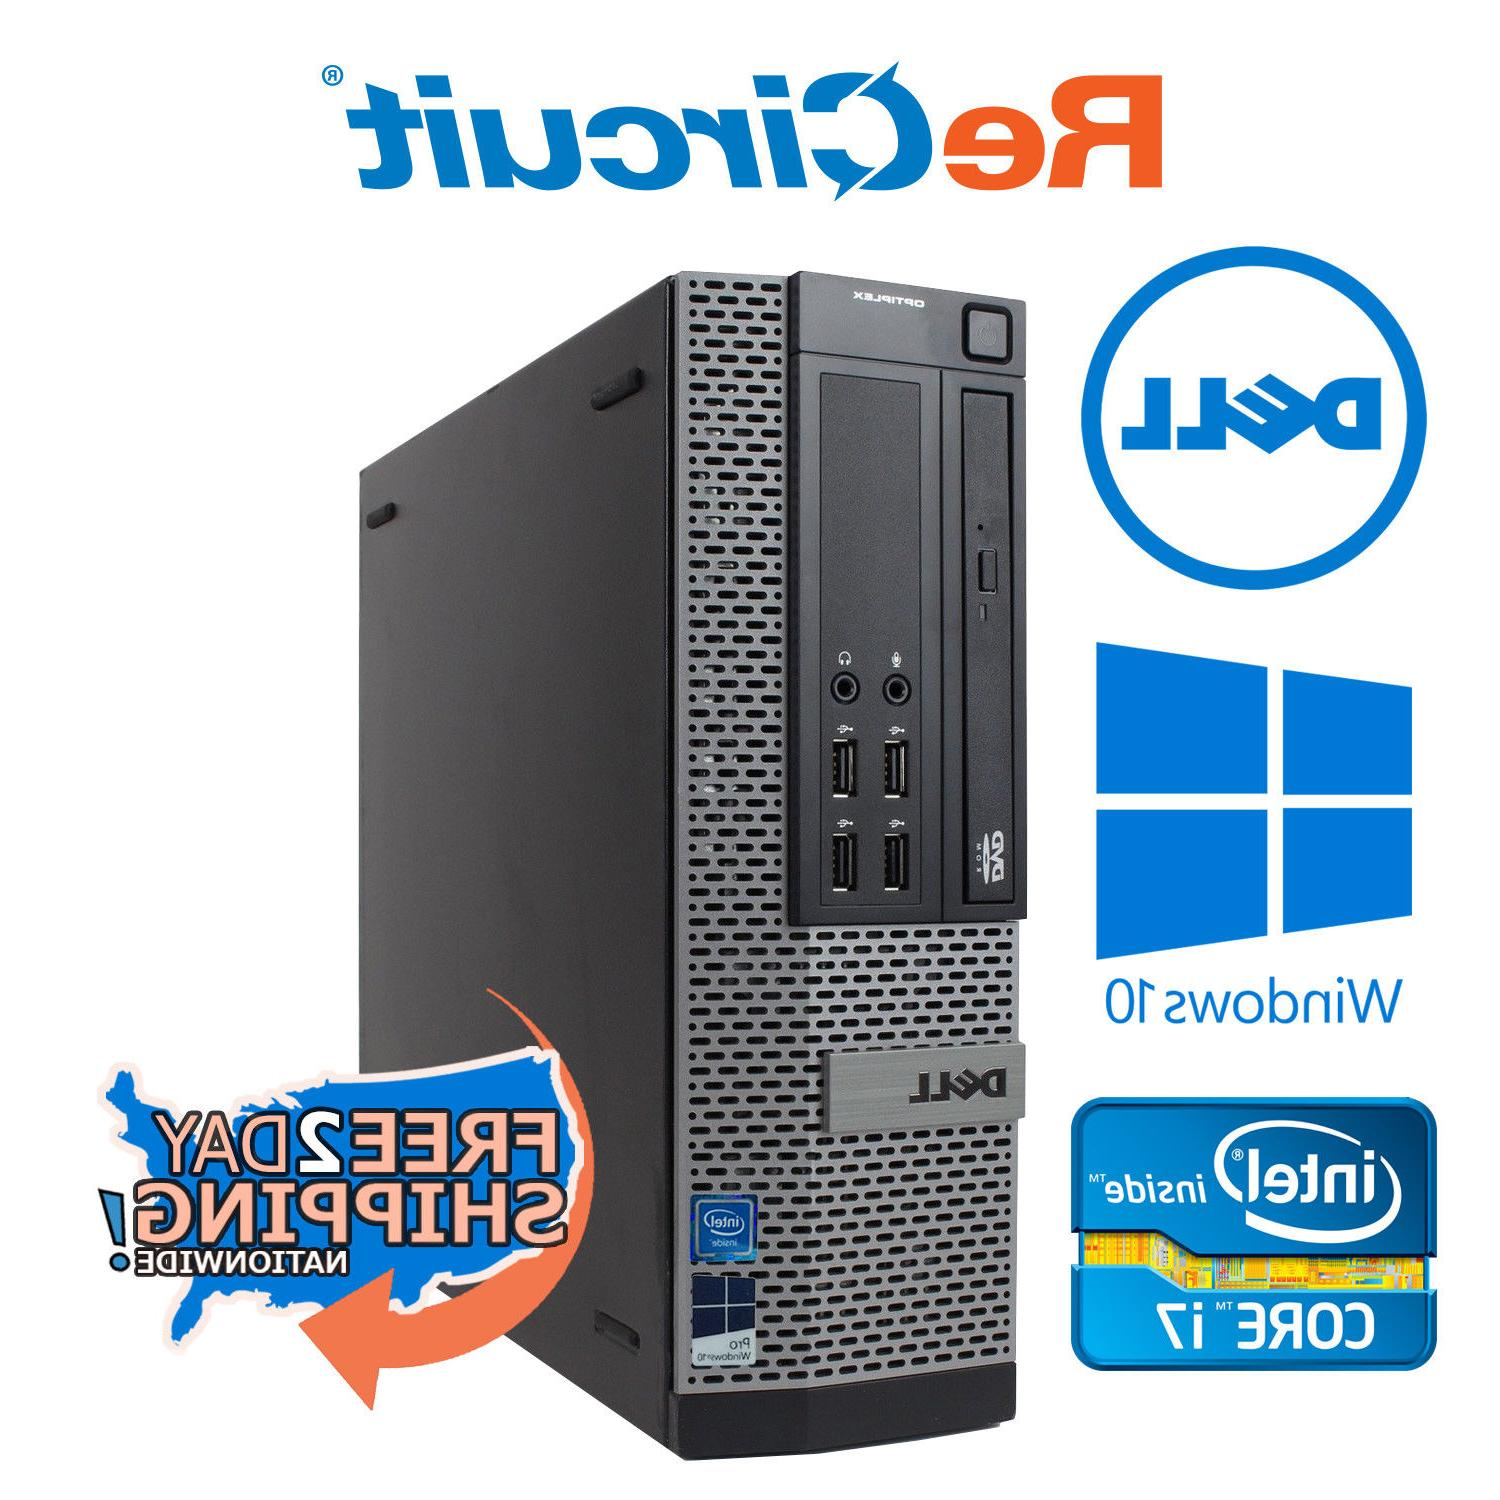 dell 990 desktop computer i7 3 8ghz